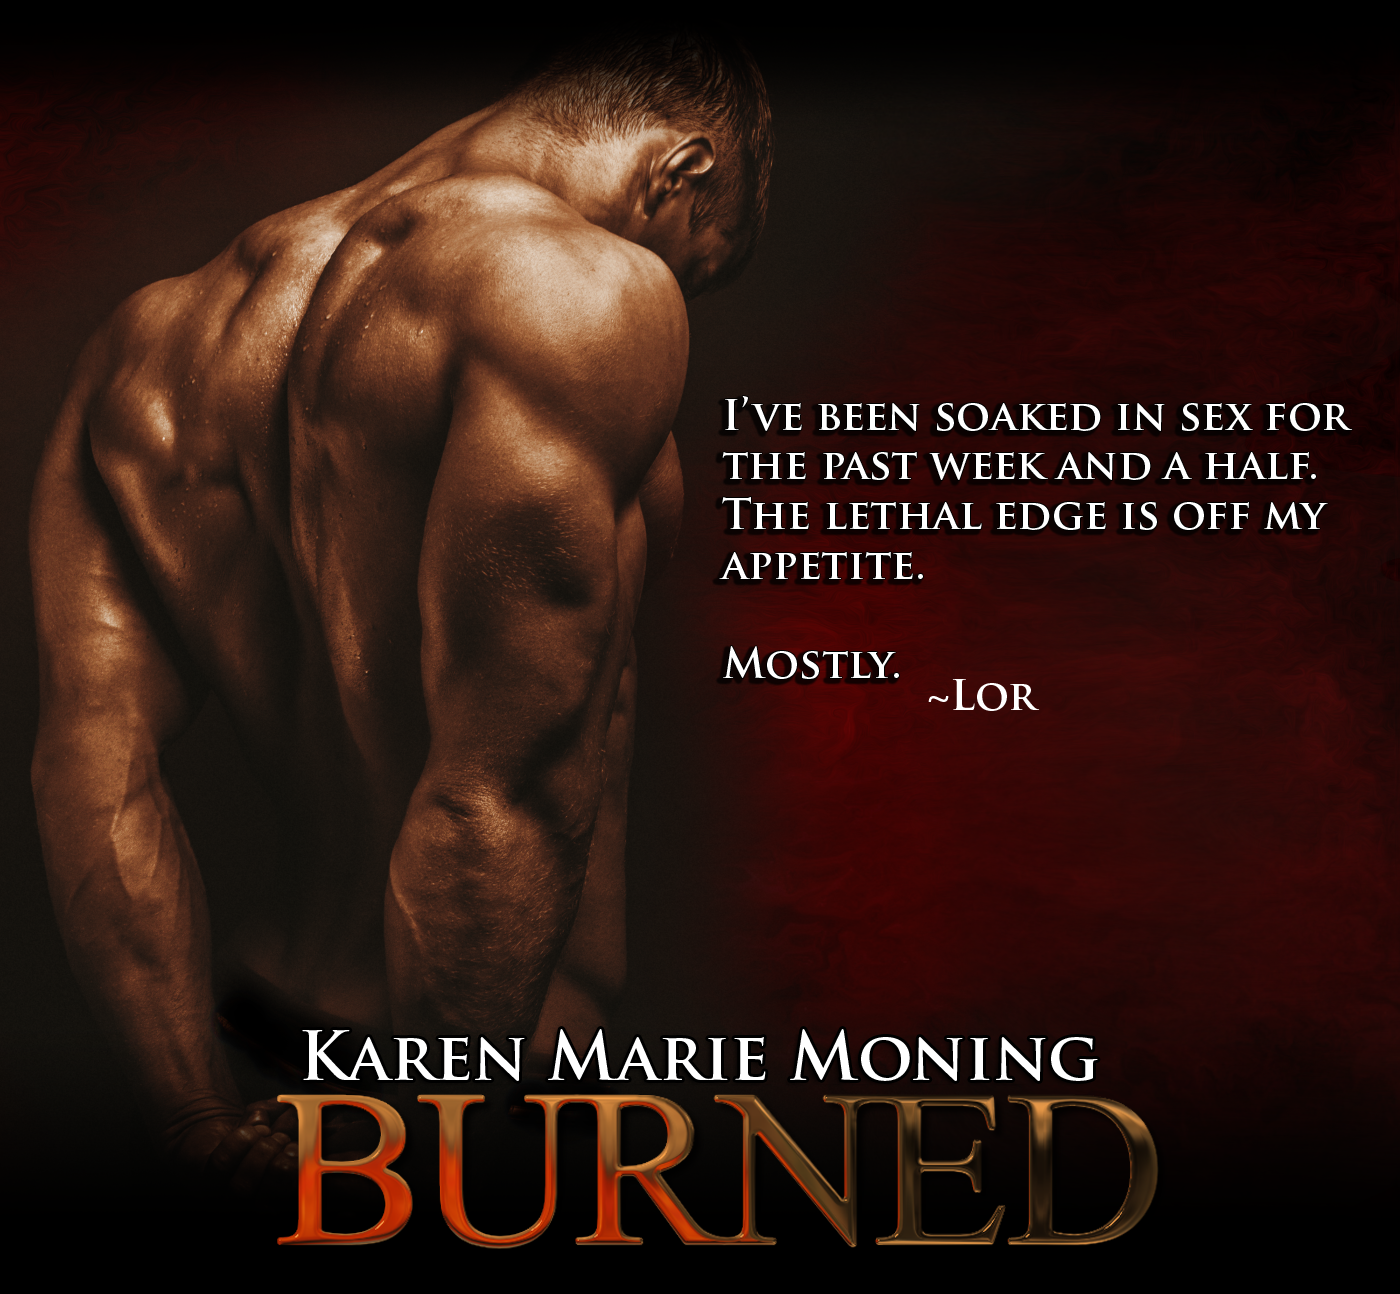 Karen marie moning burned book google search book characters karen marie moning burned book google search fandeluxe Images